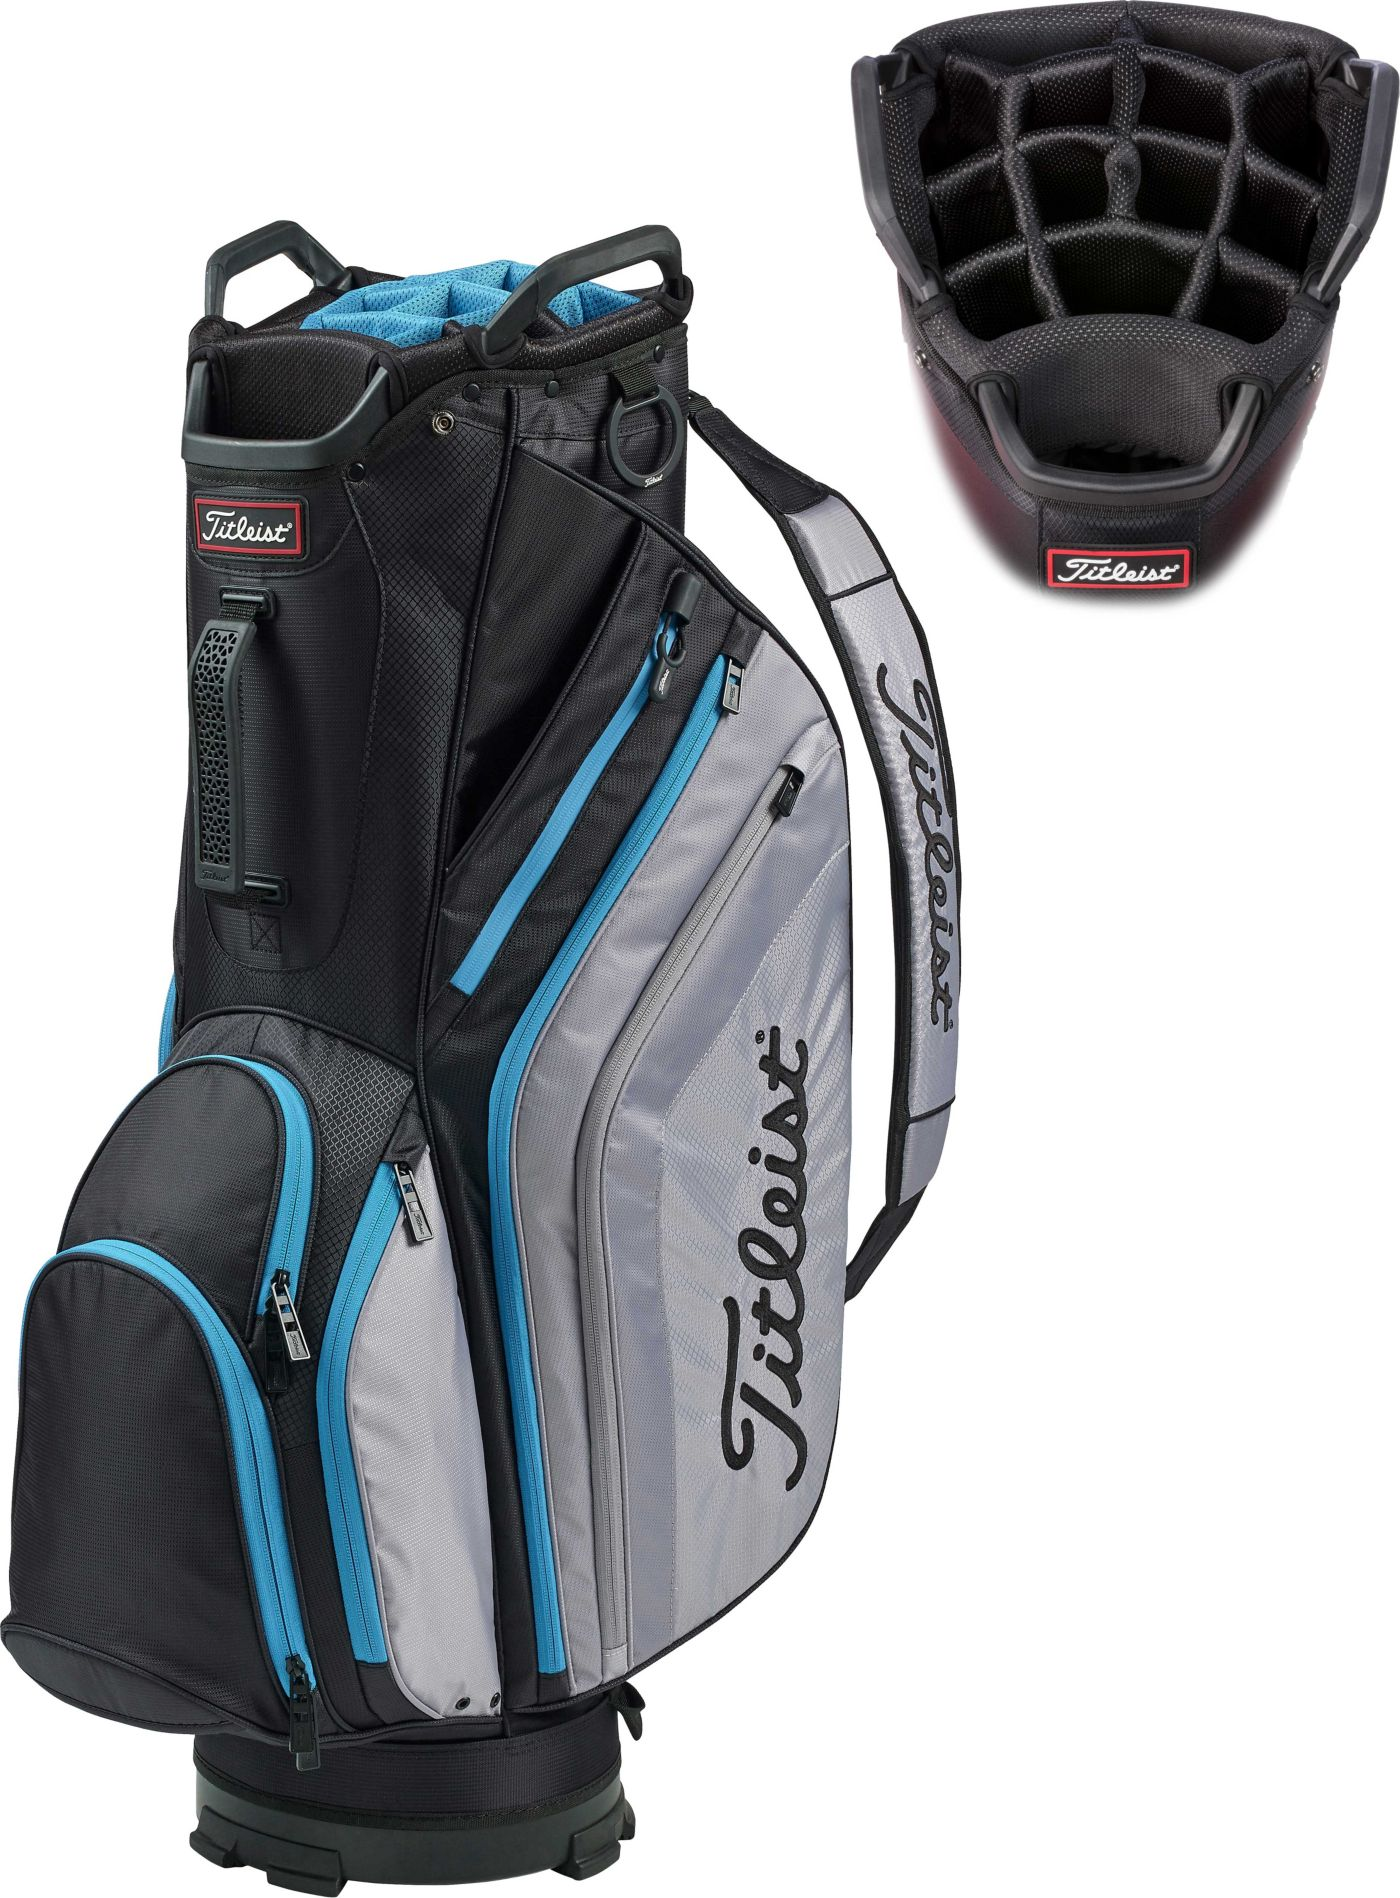 Titleist Men's Lightweight Cart Golf Bag